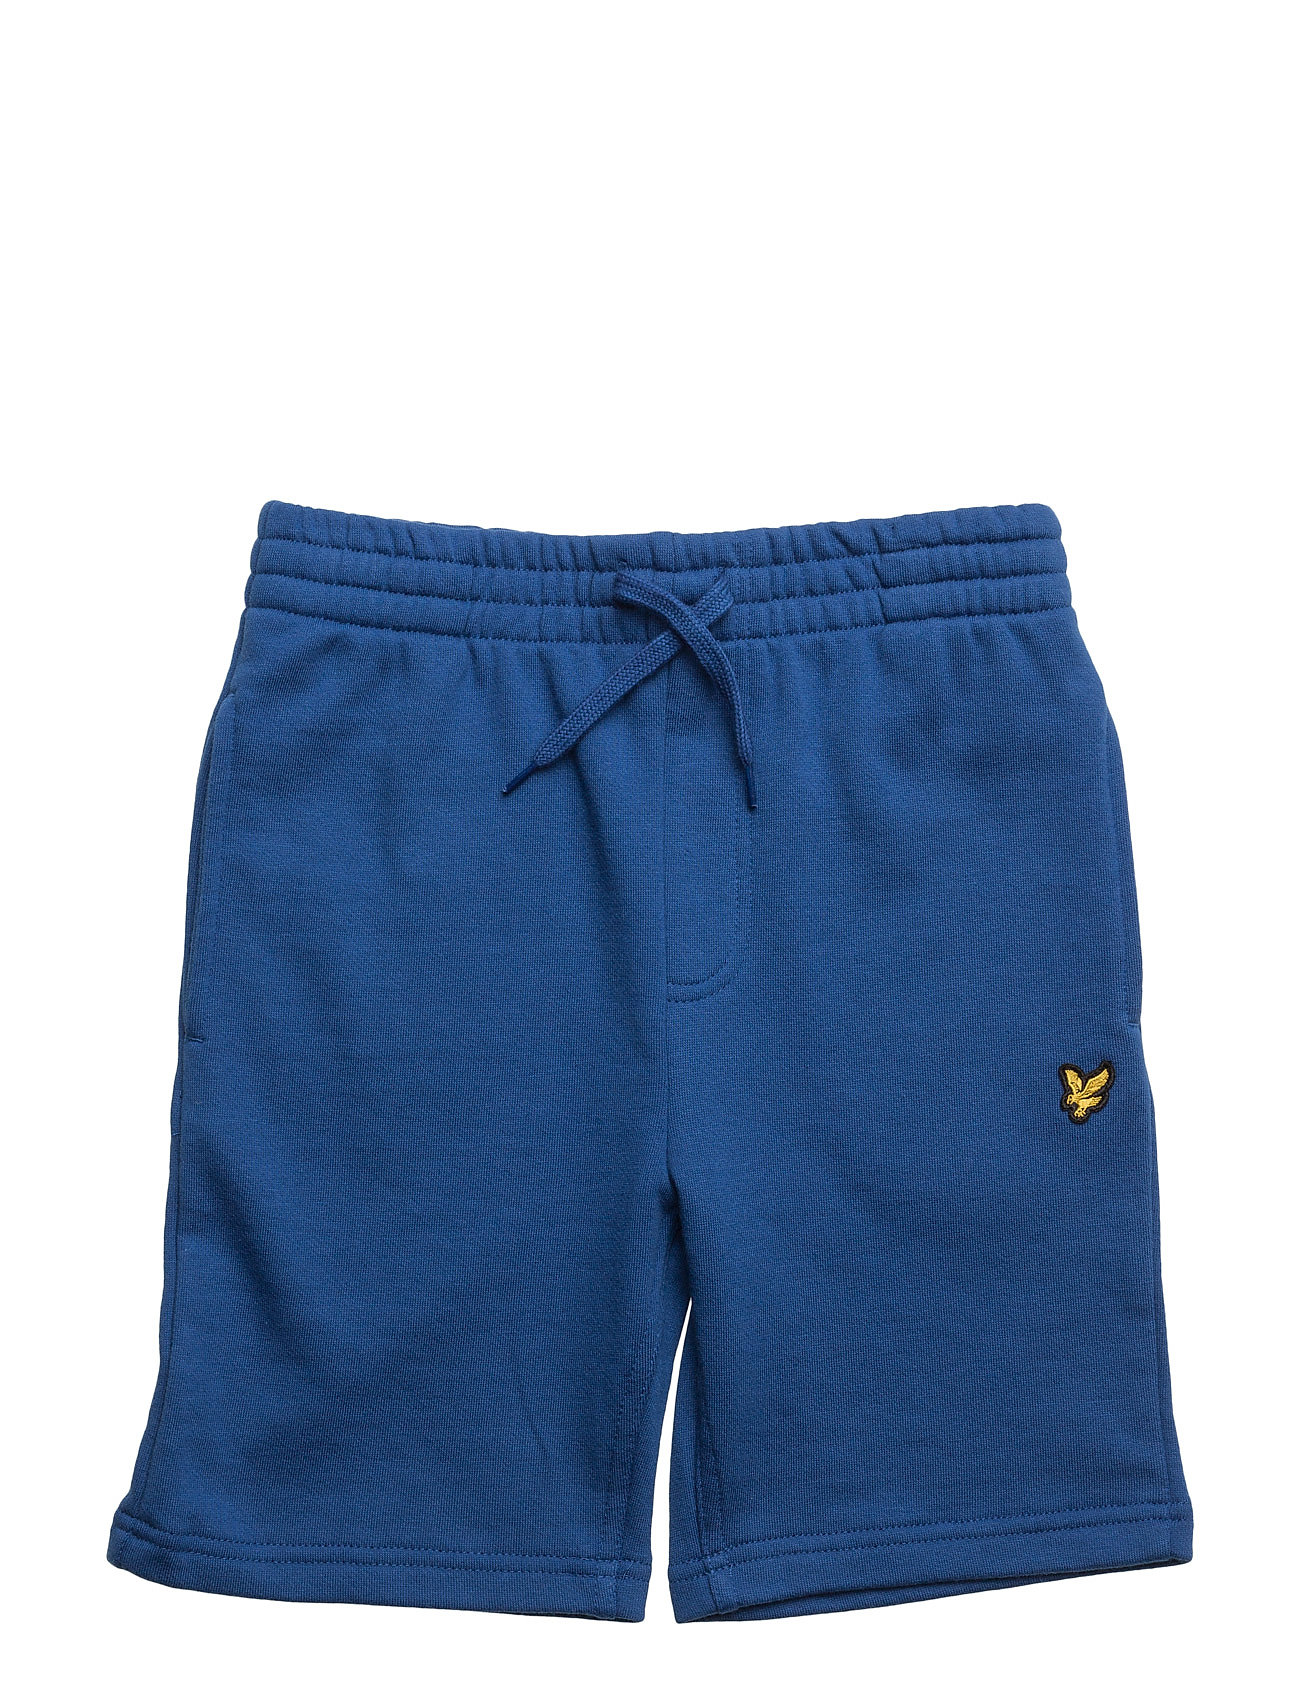 Lyle & Scott Classic Sweat Short thumbnail